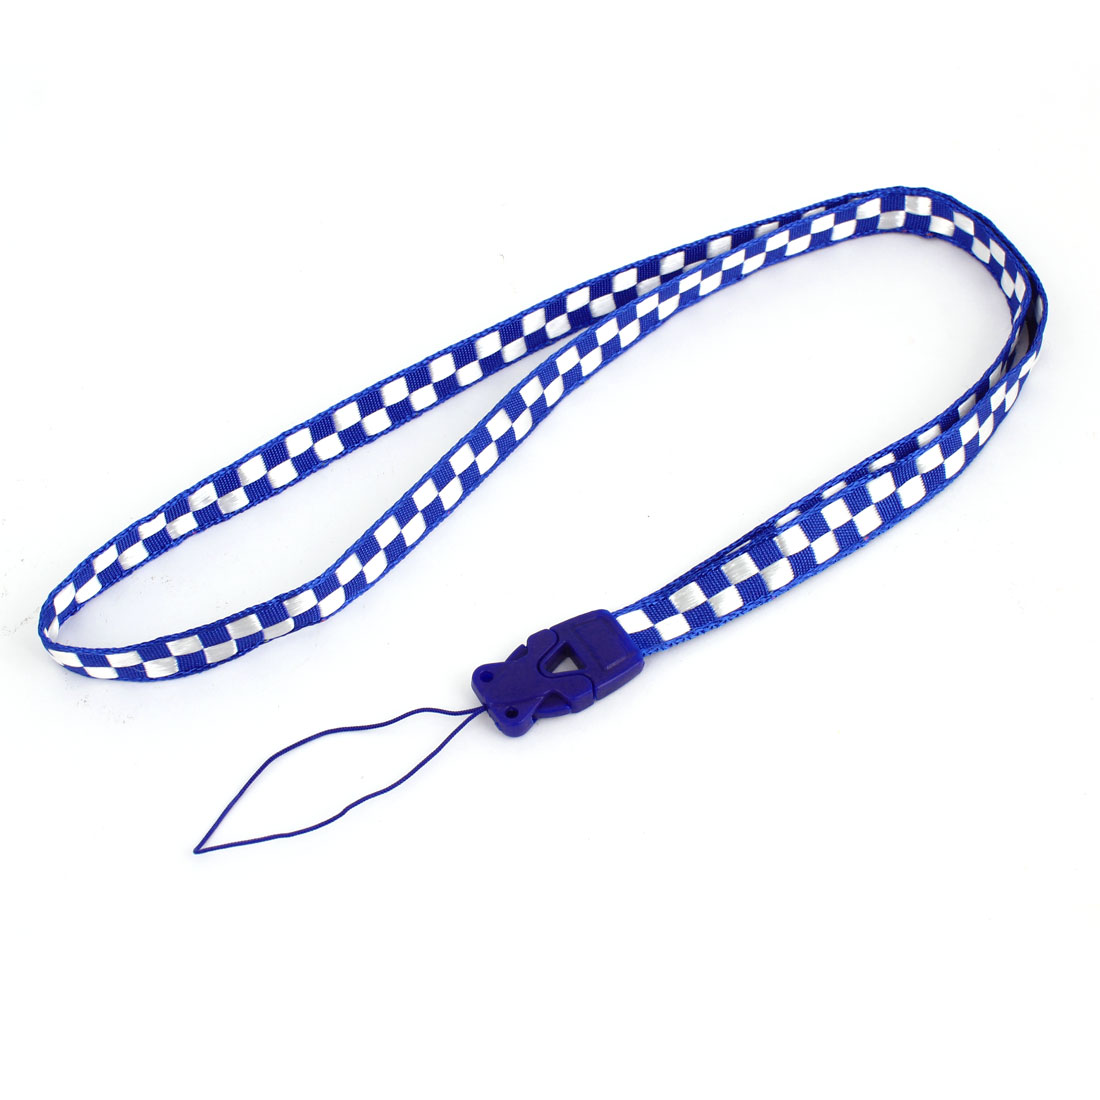 Office Name Card ID Badge Holder Neck Cord Strap Band String Lanyard Blue White